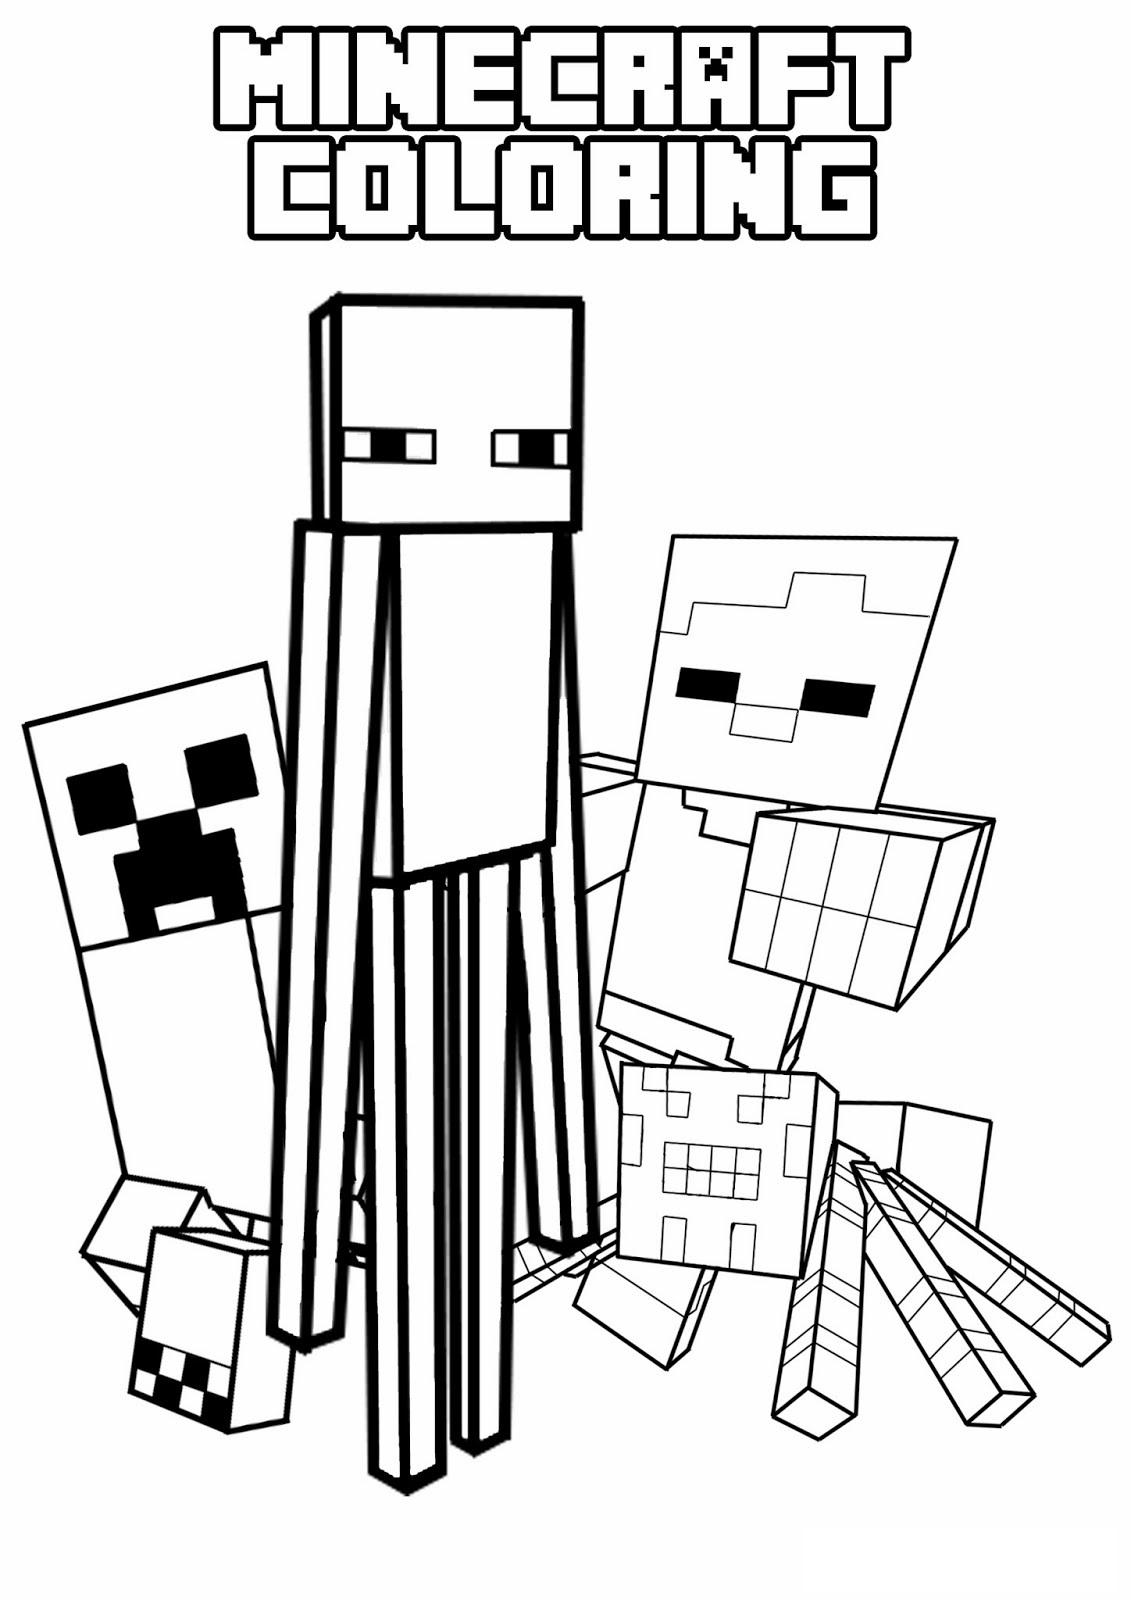 coloring minecraft creeper minecraft creeper drawing free download on clipartmag minecraft coloring creeper